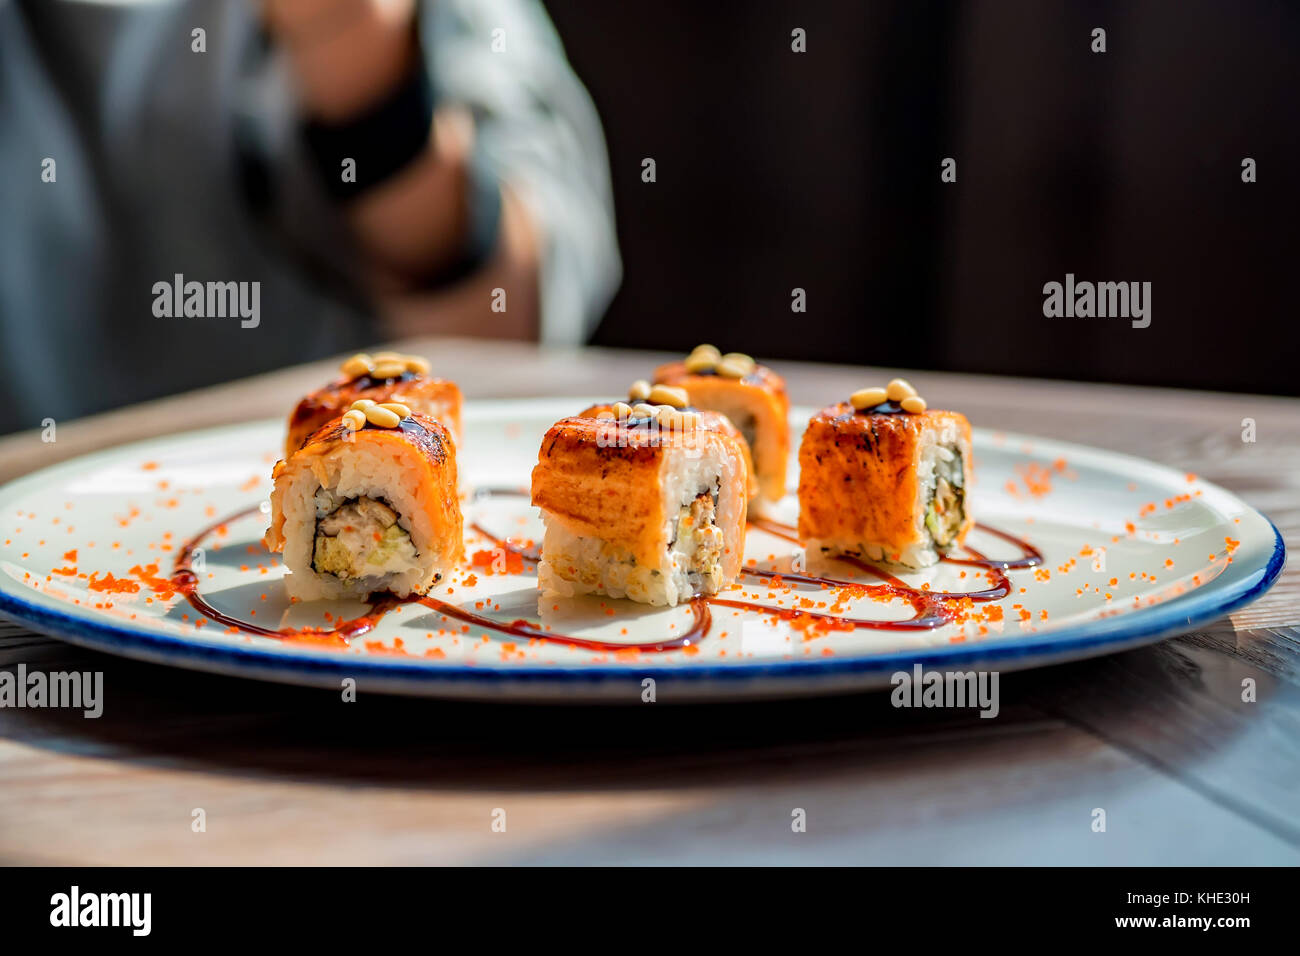 Food photographer takes picure of sushi rolls - Stock Image